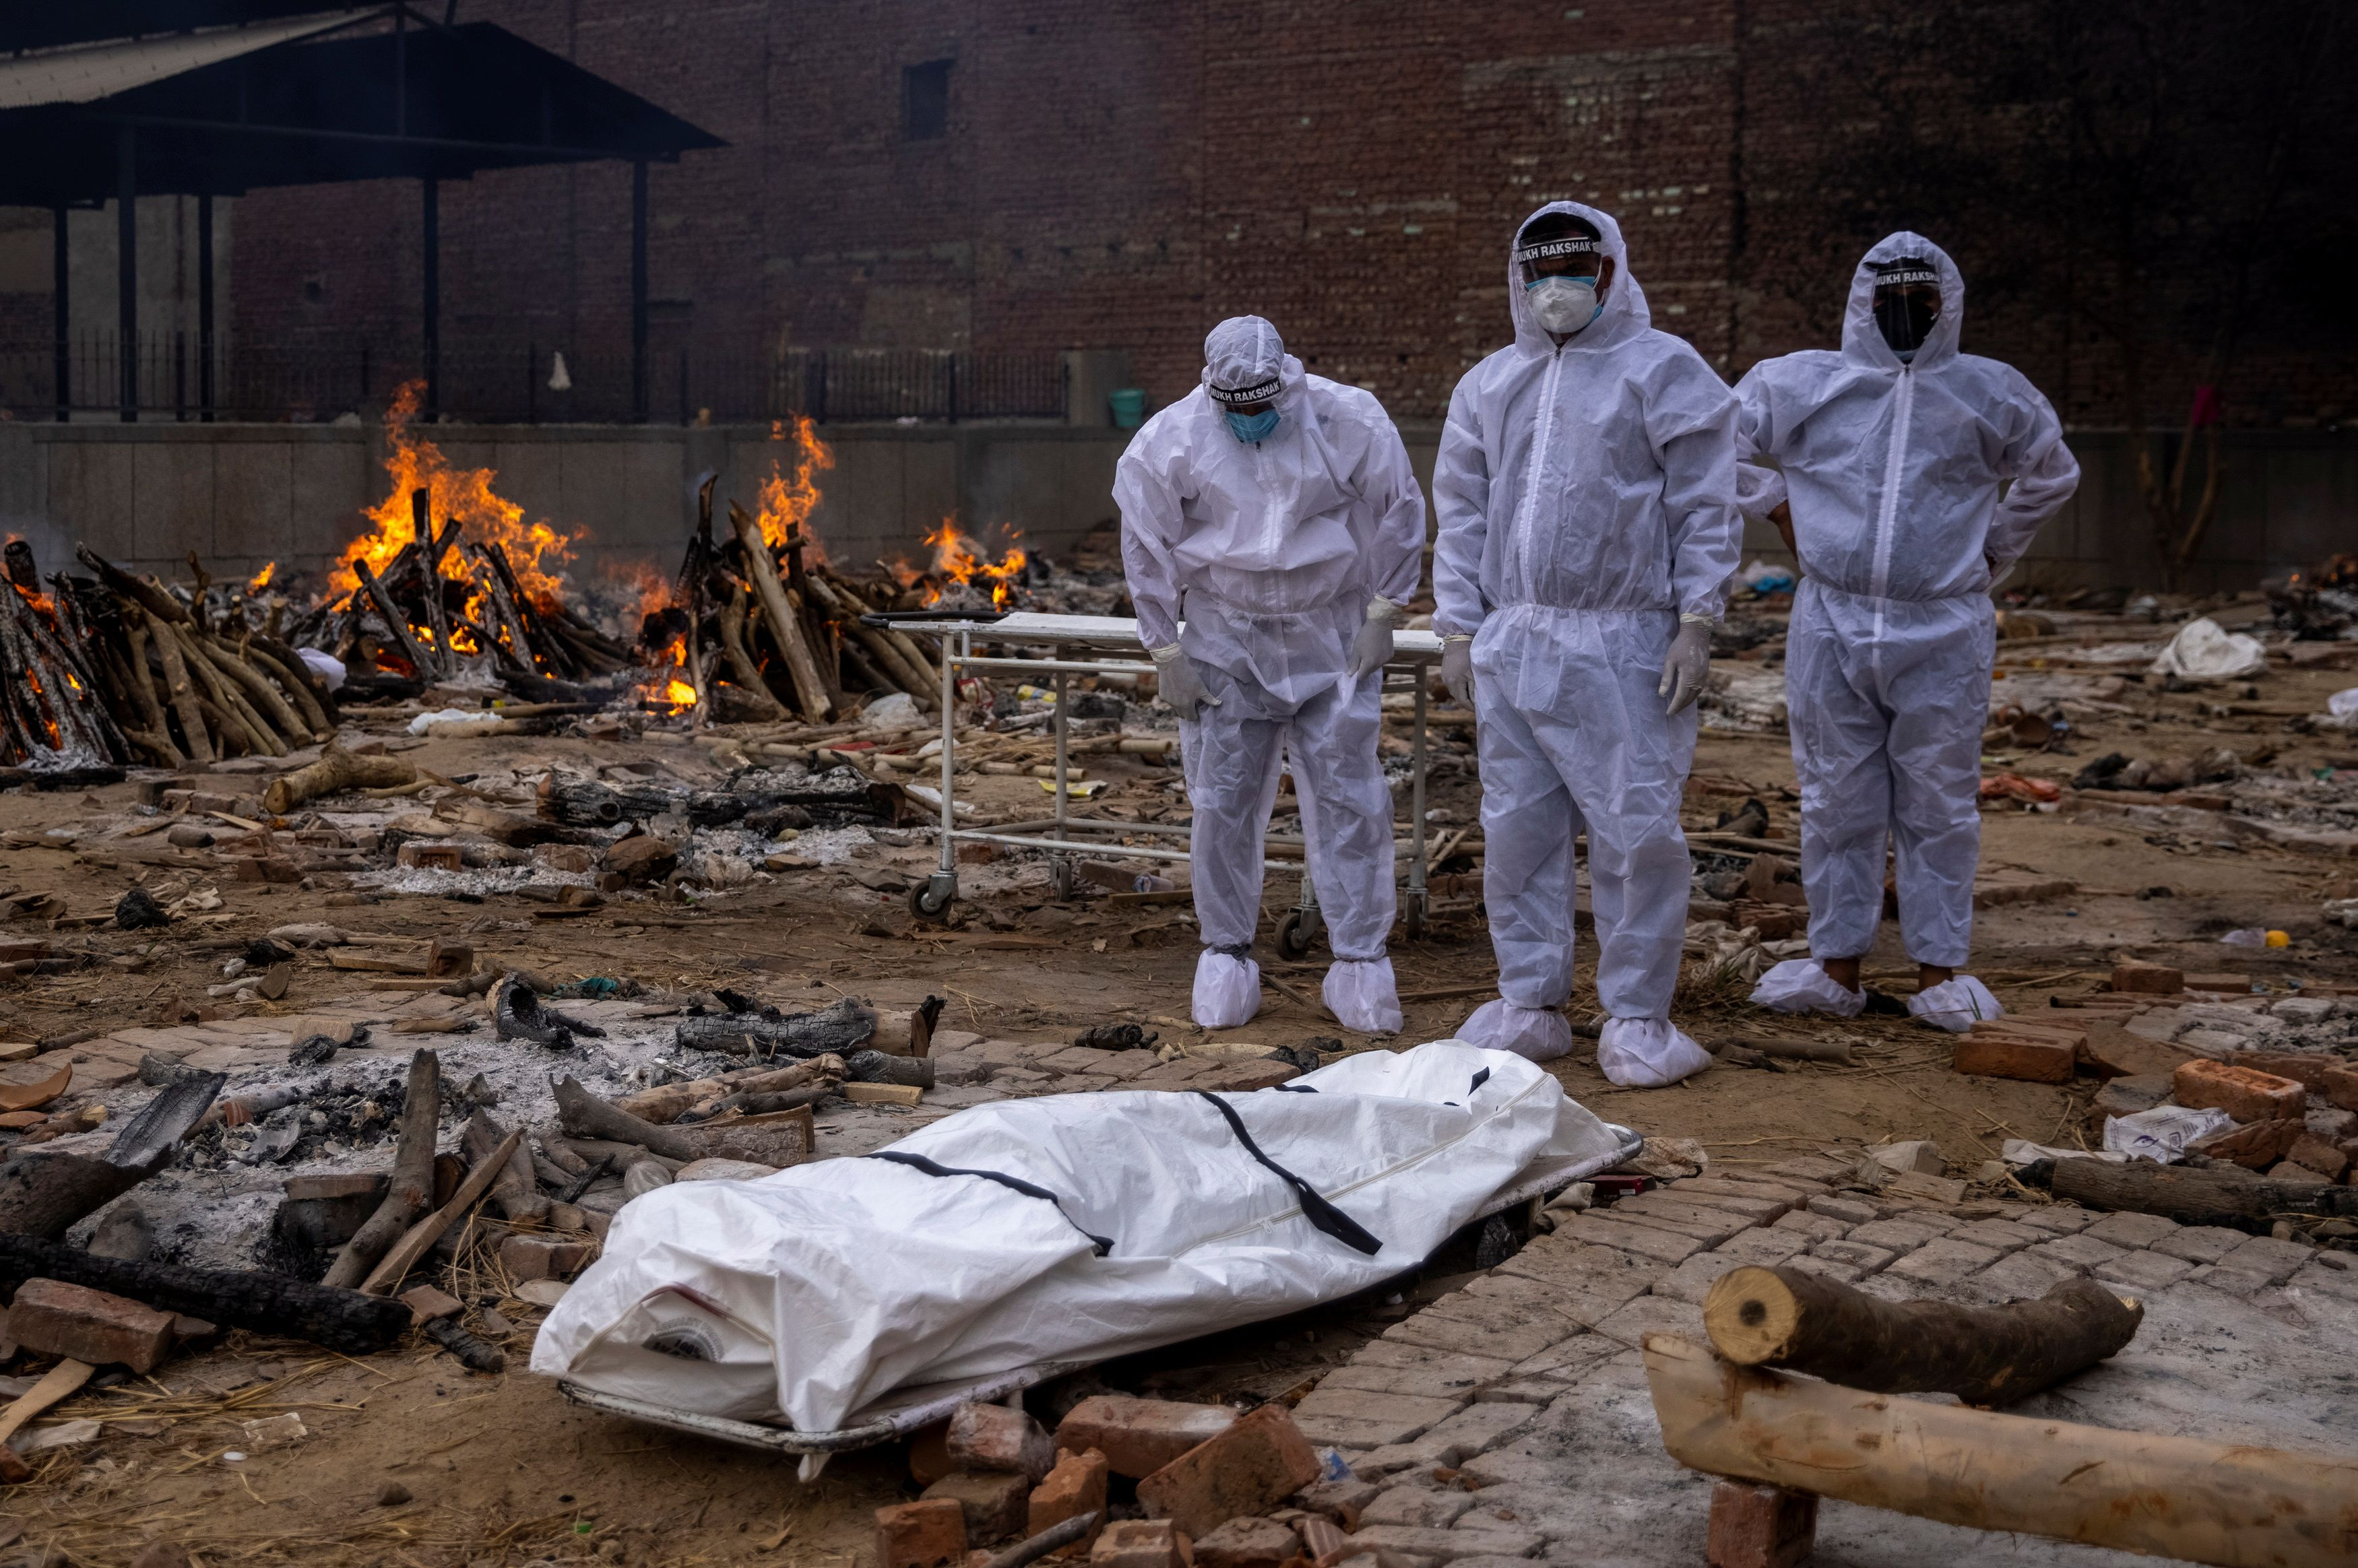 Men wearing protective suits stand next to the body of their relative, who died from the coronavirus disease (COVID-19), before her cremation at a crematorium ground in New Delhi, India, May 4, 2021. REUTERS/Danish Siddiqui